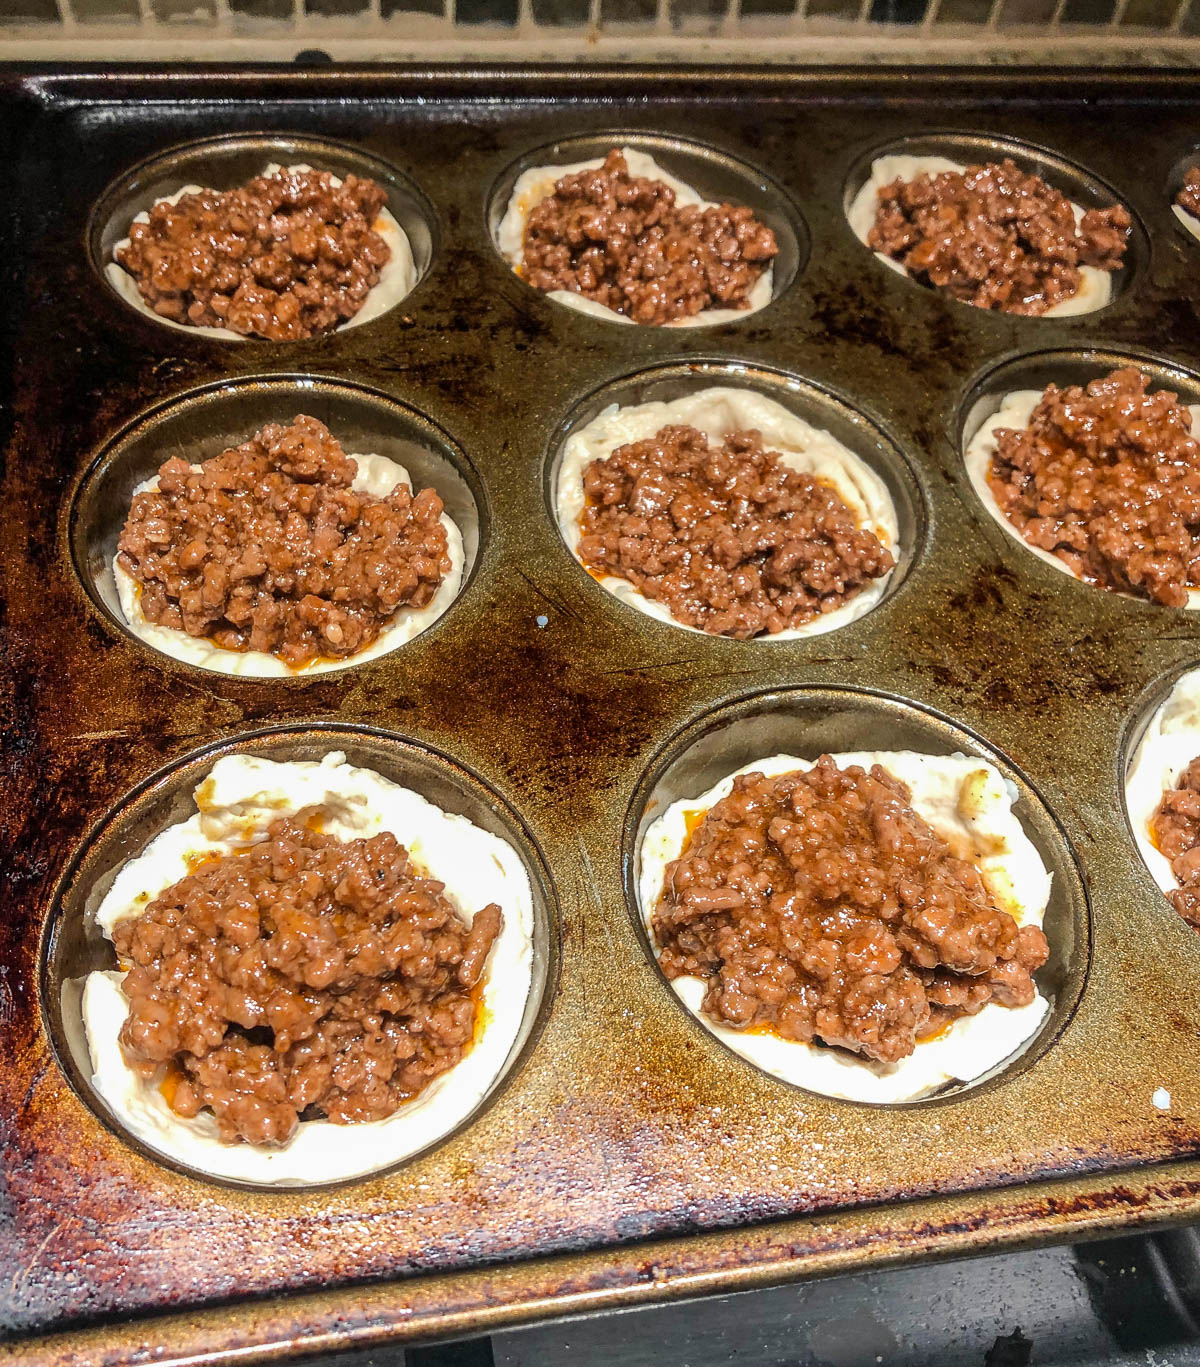 bbq beef muffins ready for baking